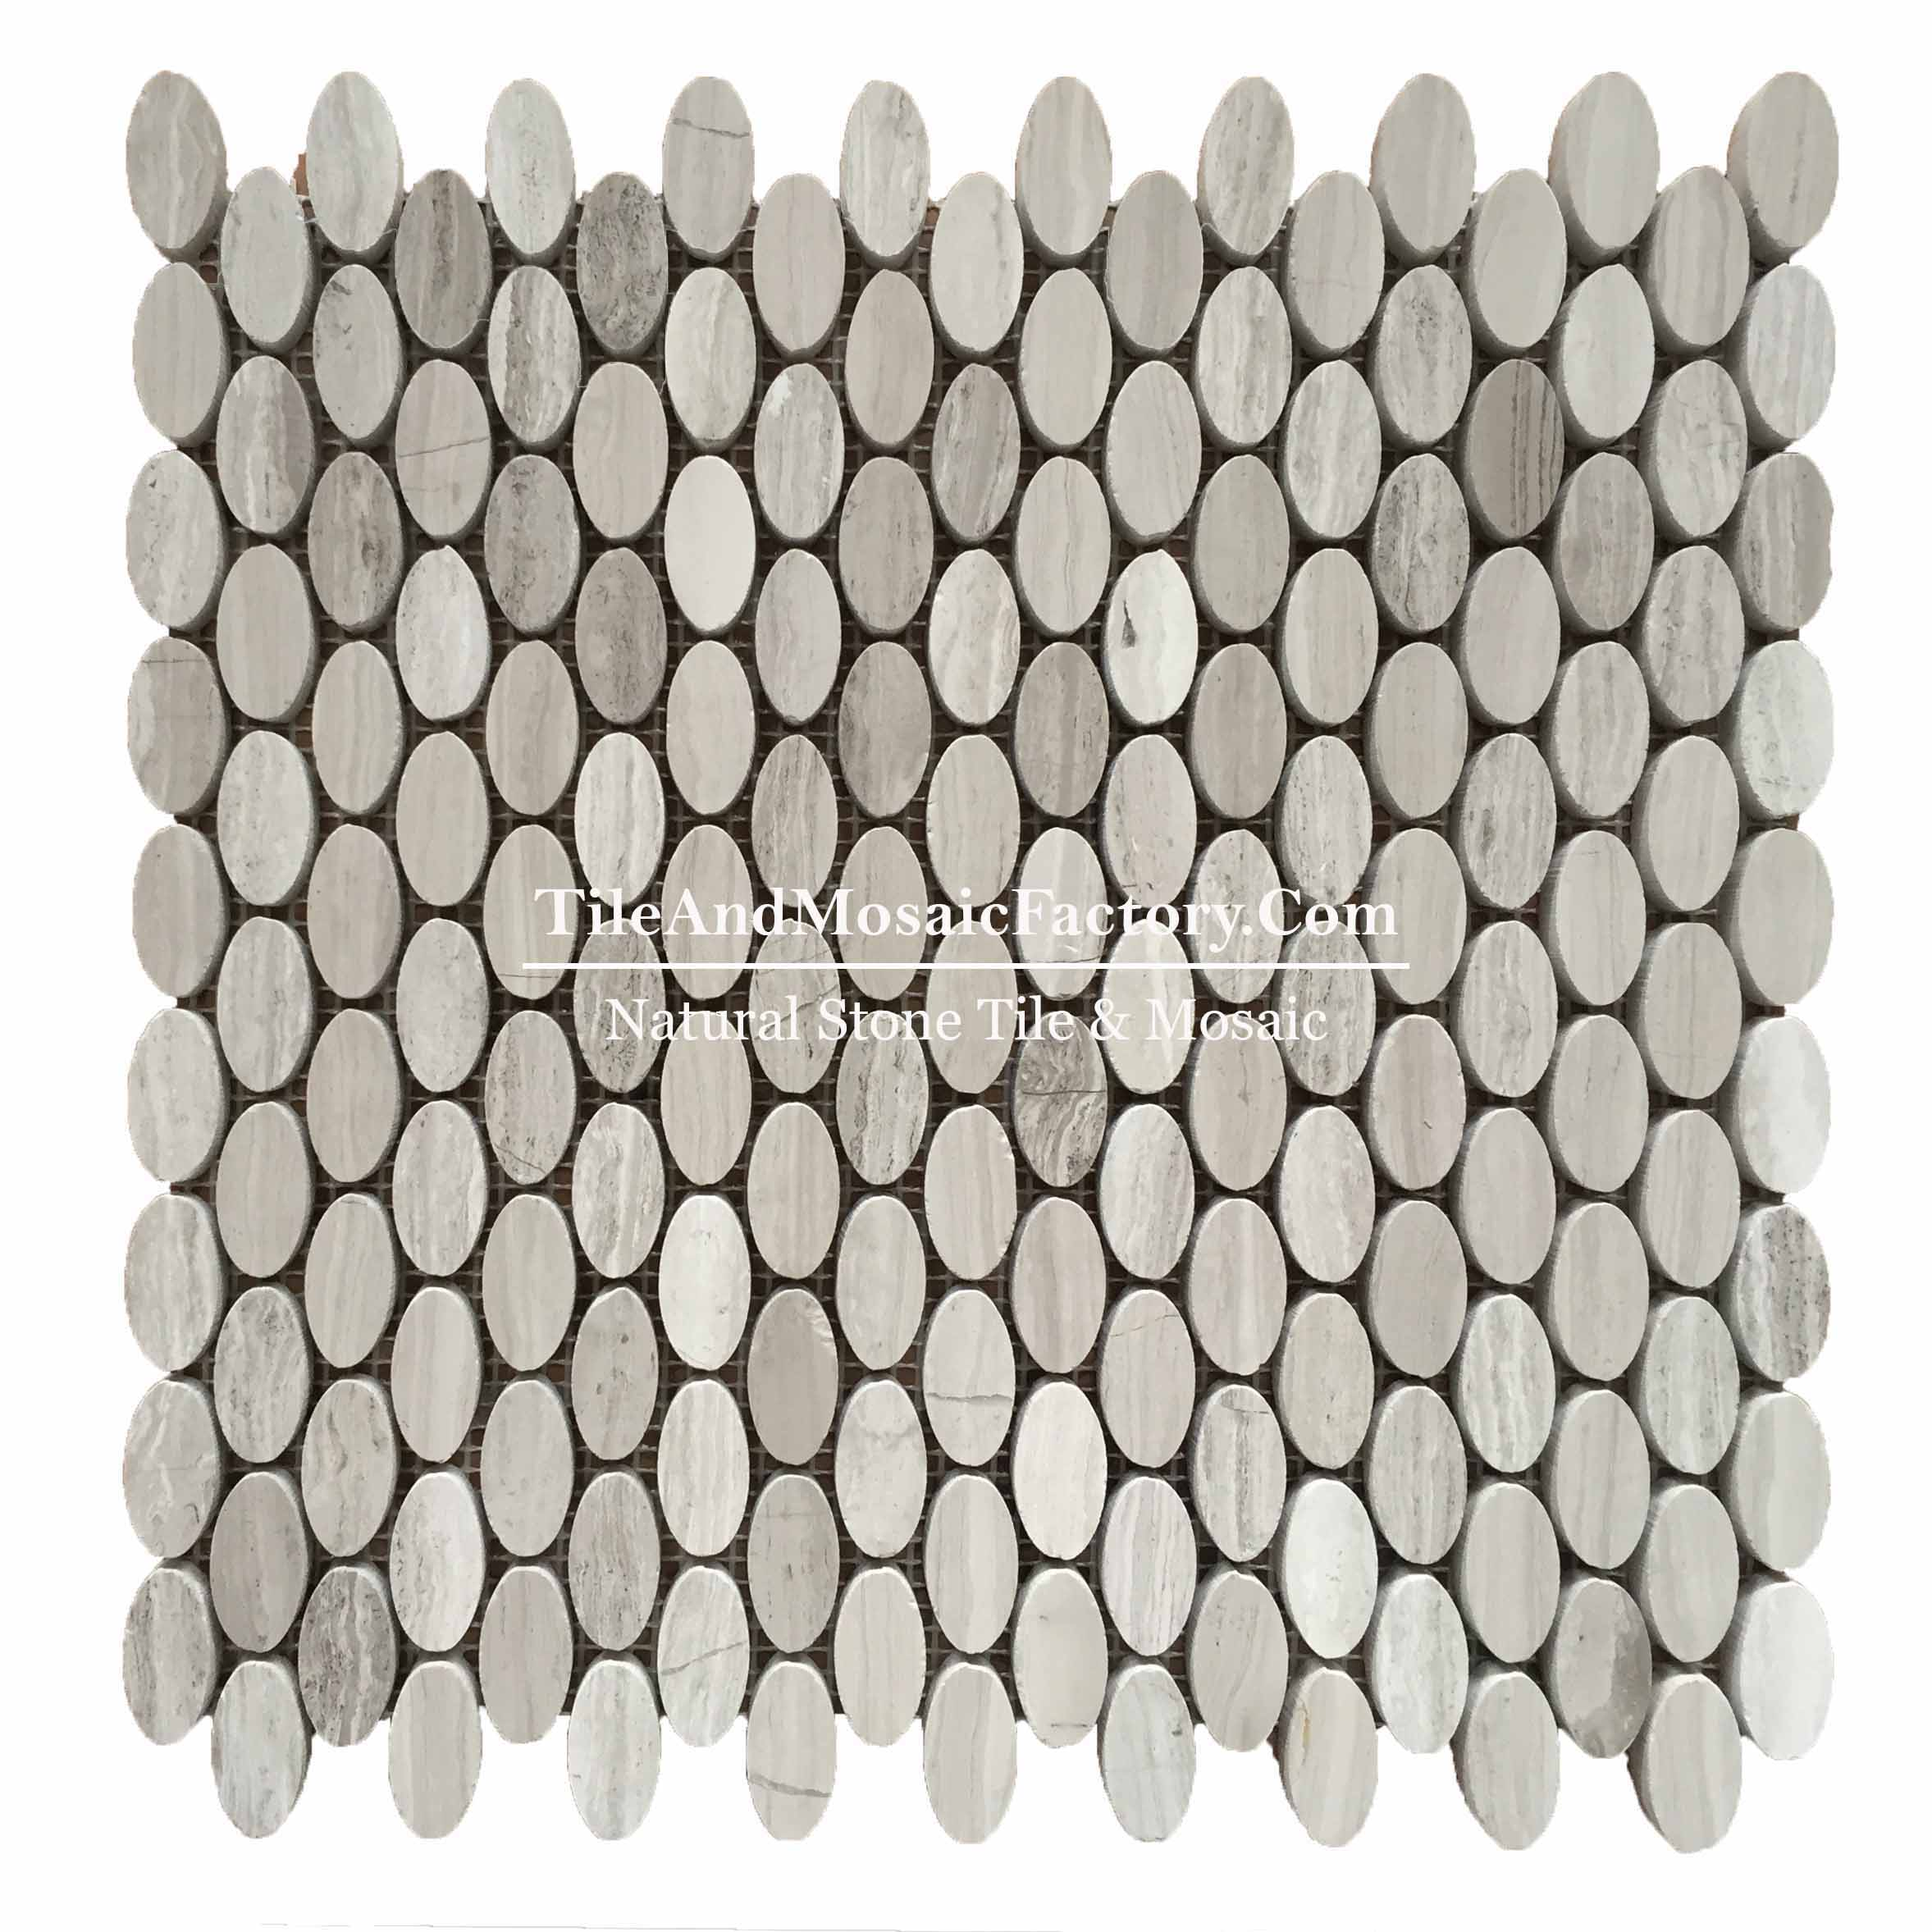 Wooden Gray Oval 5/8x1 polished Grey color Marble Mosaic